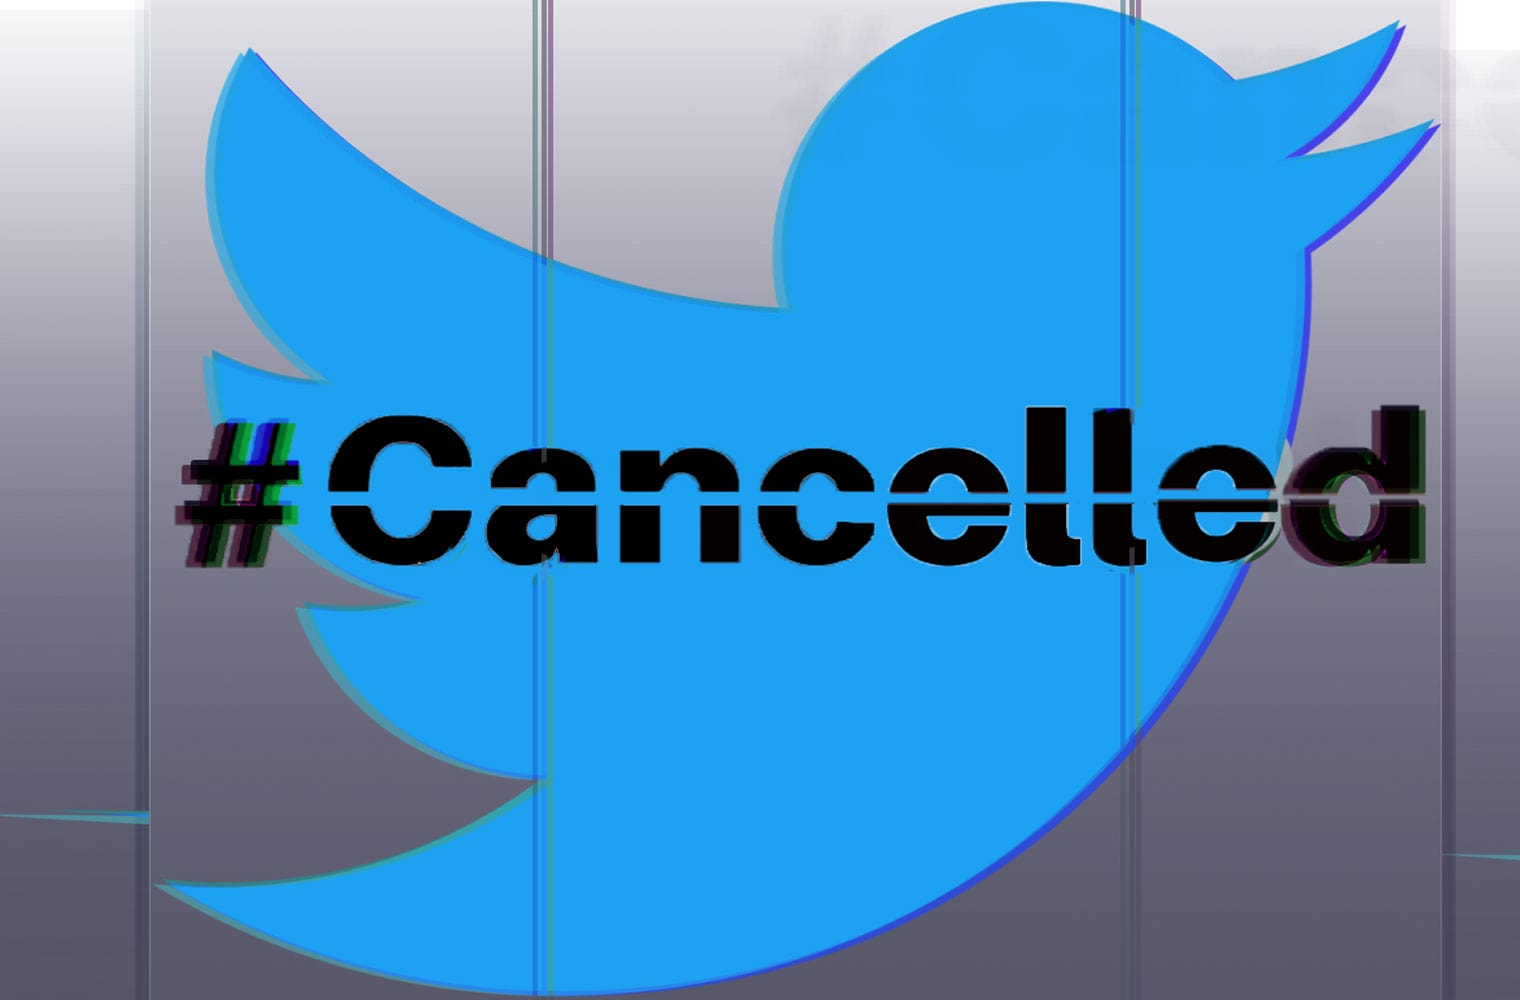 Cancel Culture: The internet doesn't forget, but we should forgive